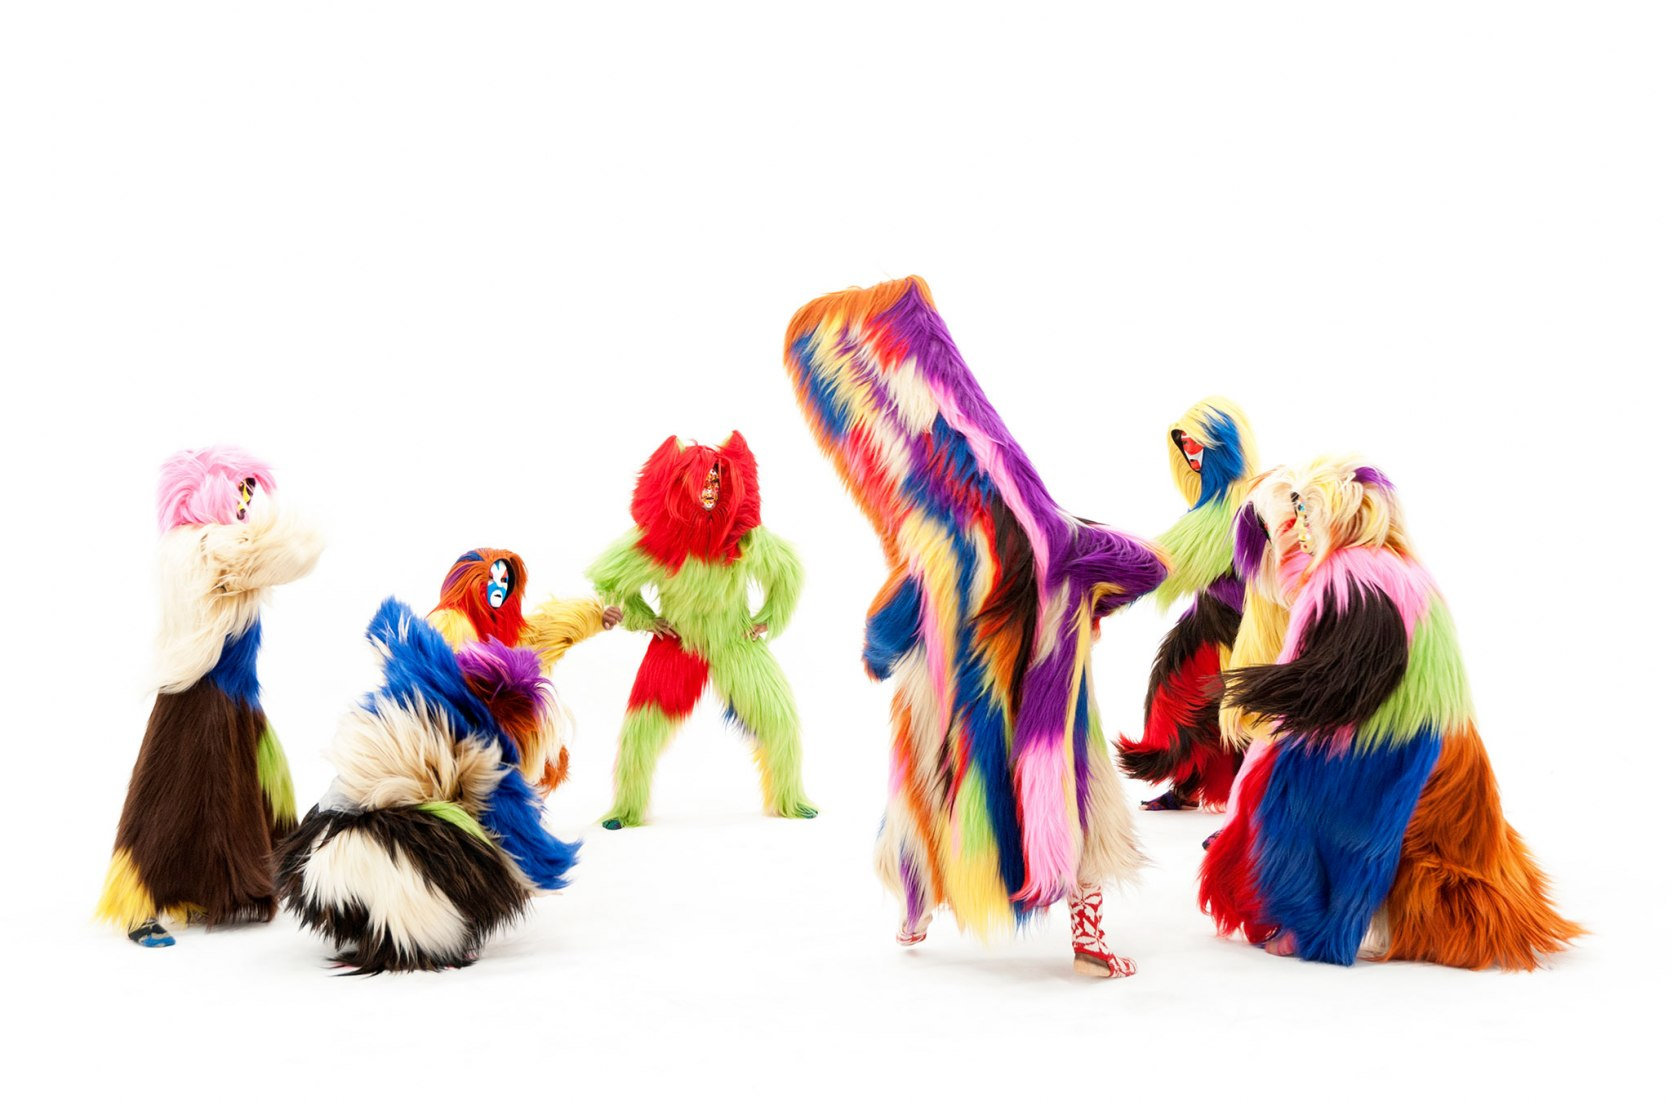 Soundsuits works by Nick Cave